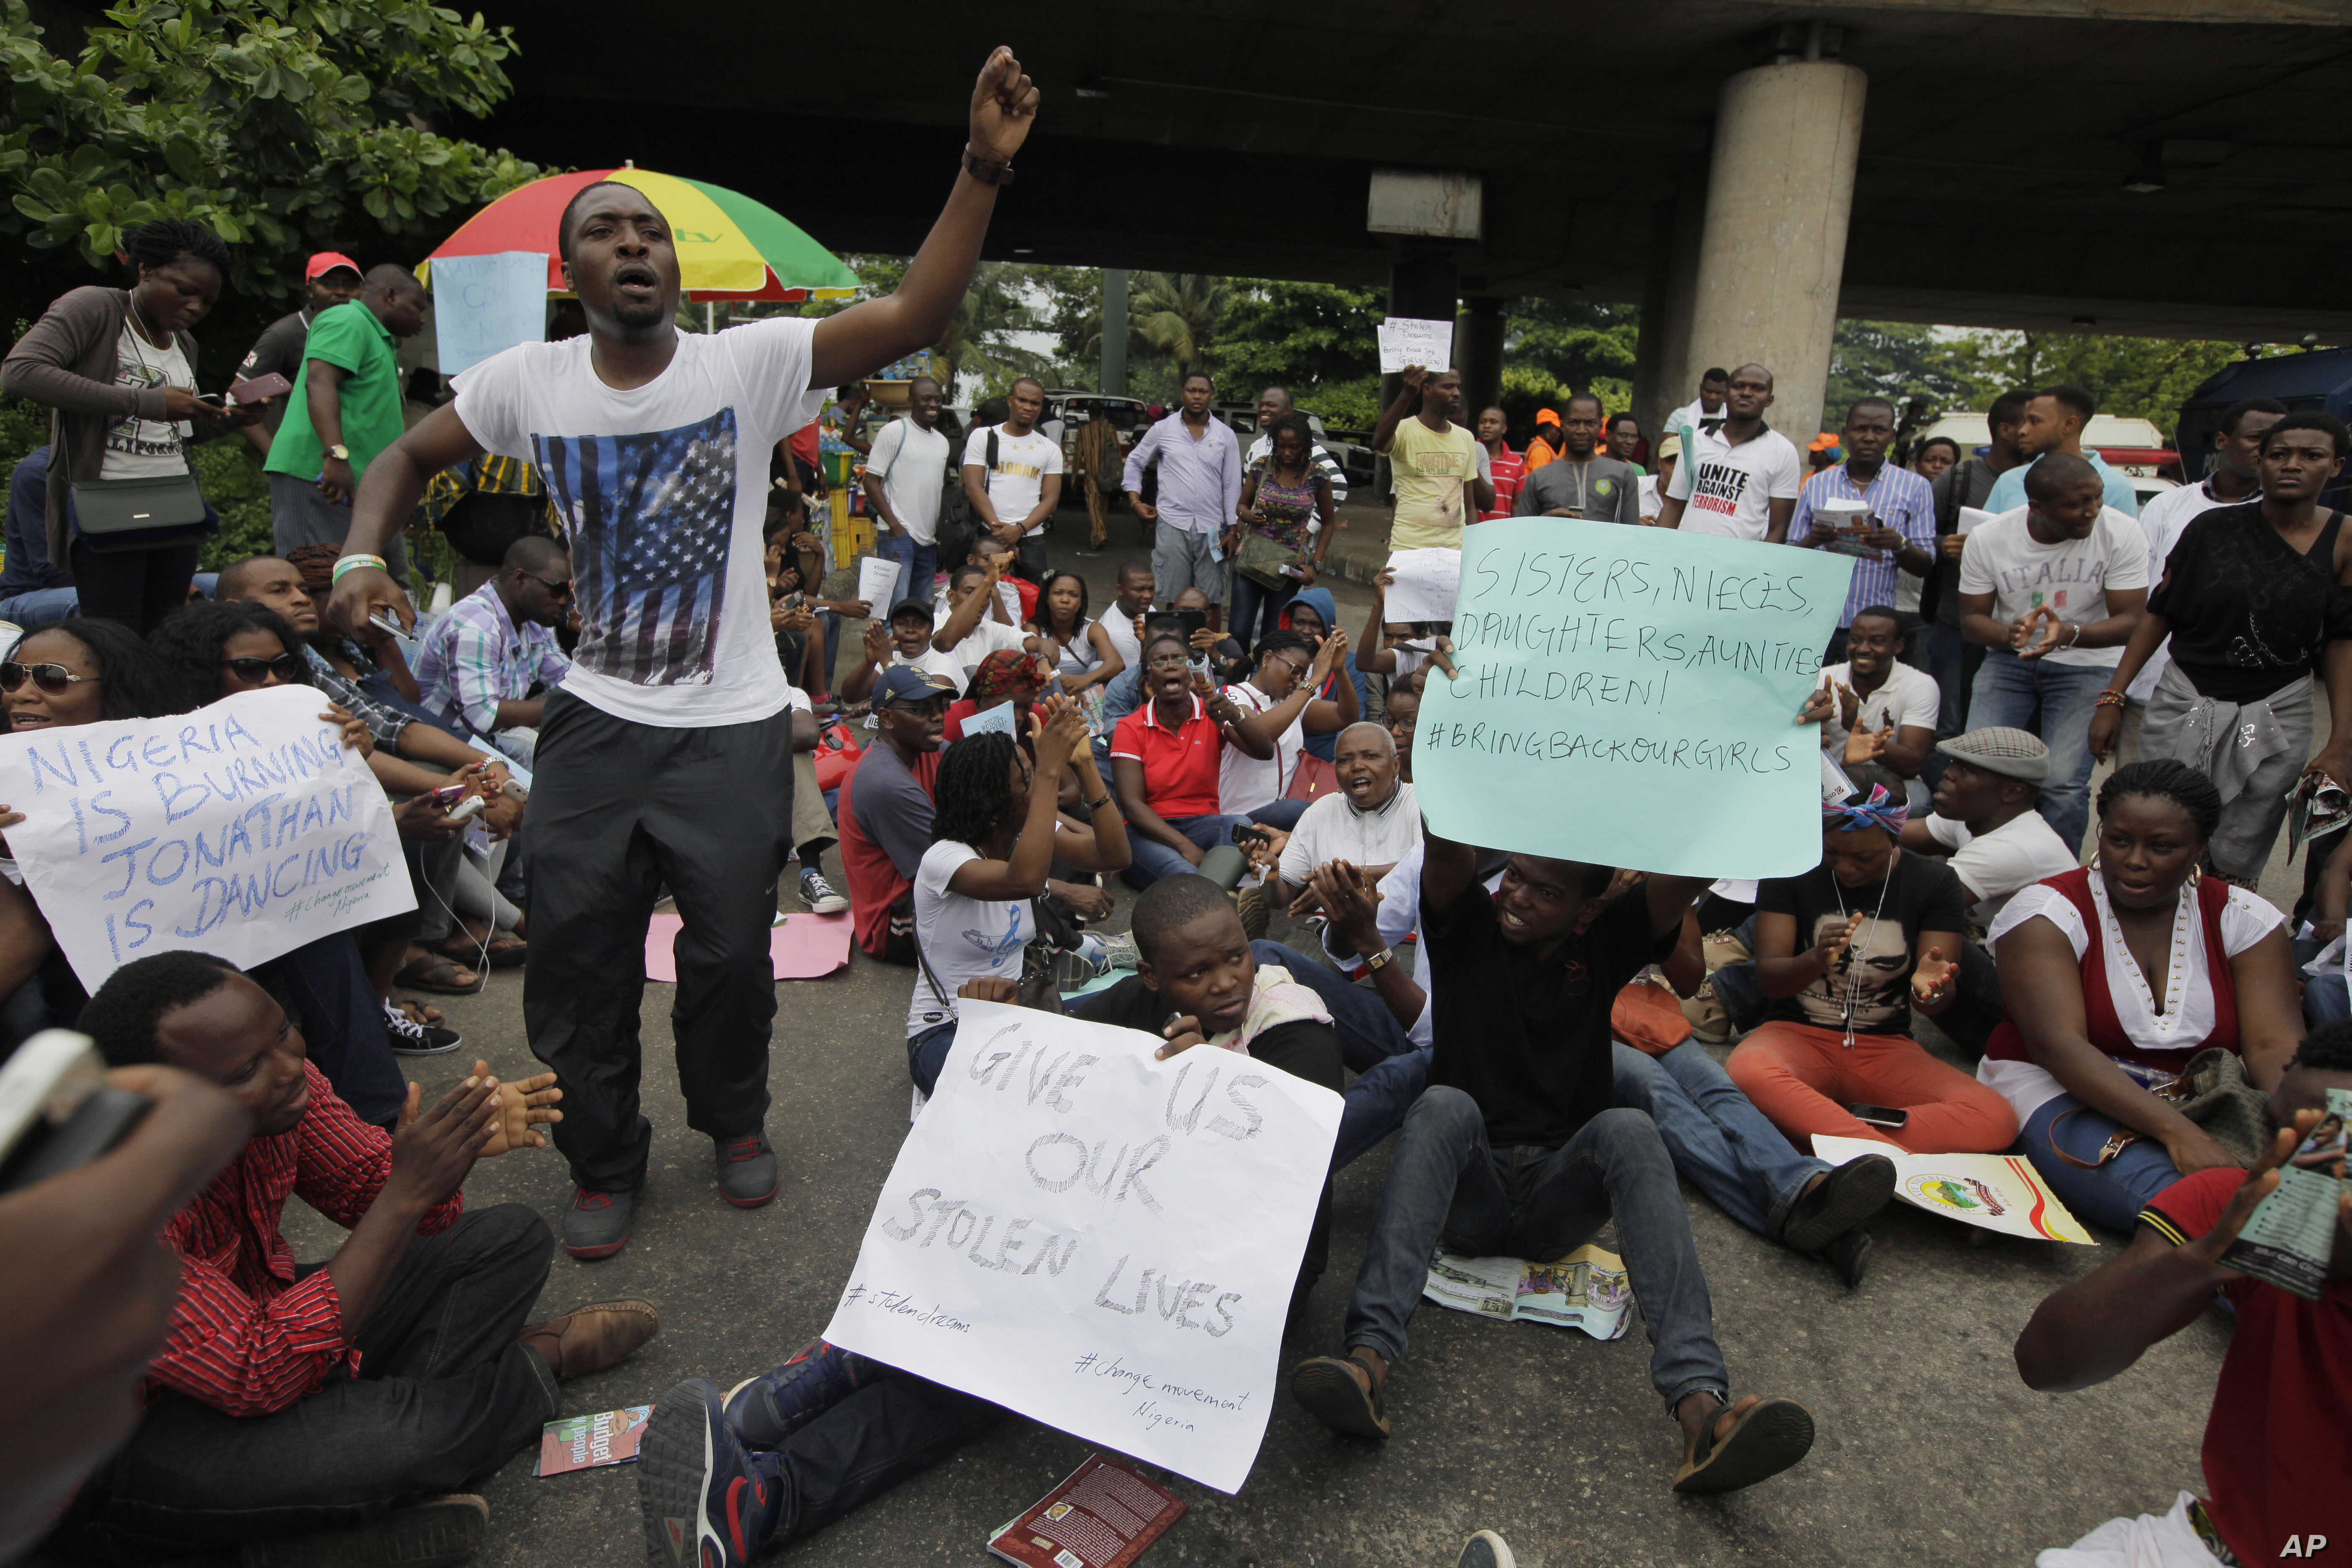 Families of Kidnapped Nigerian Girls Protest for Rescue